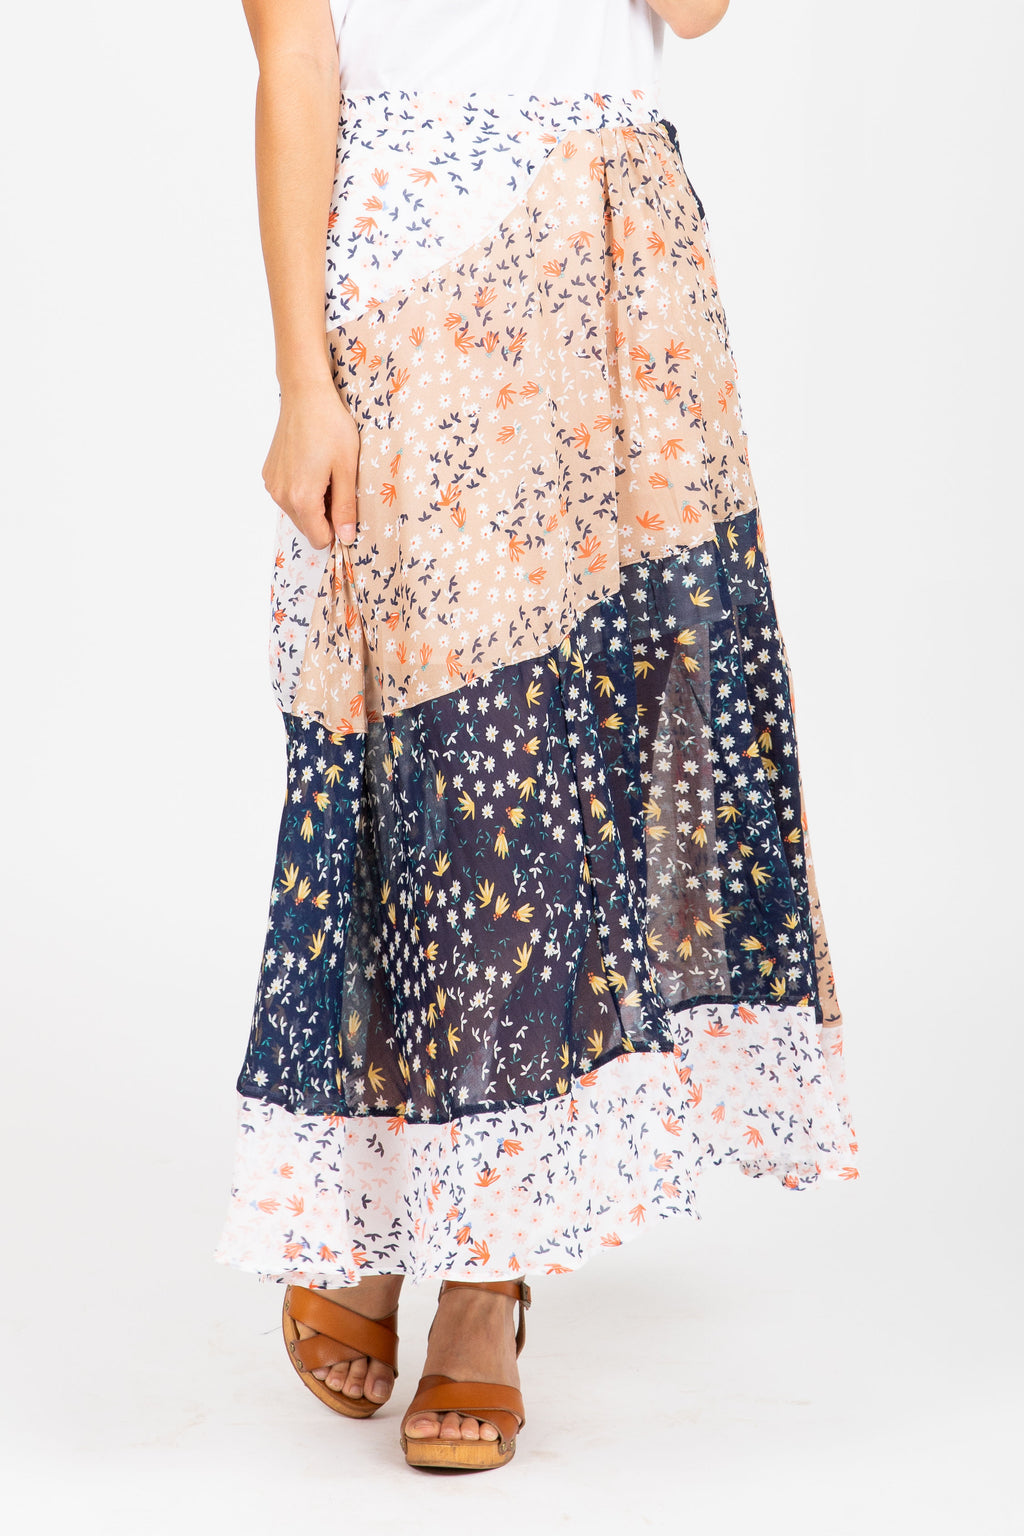 The Wayback Mixed Floral Midi Skirt in Navy